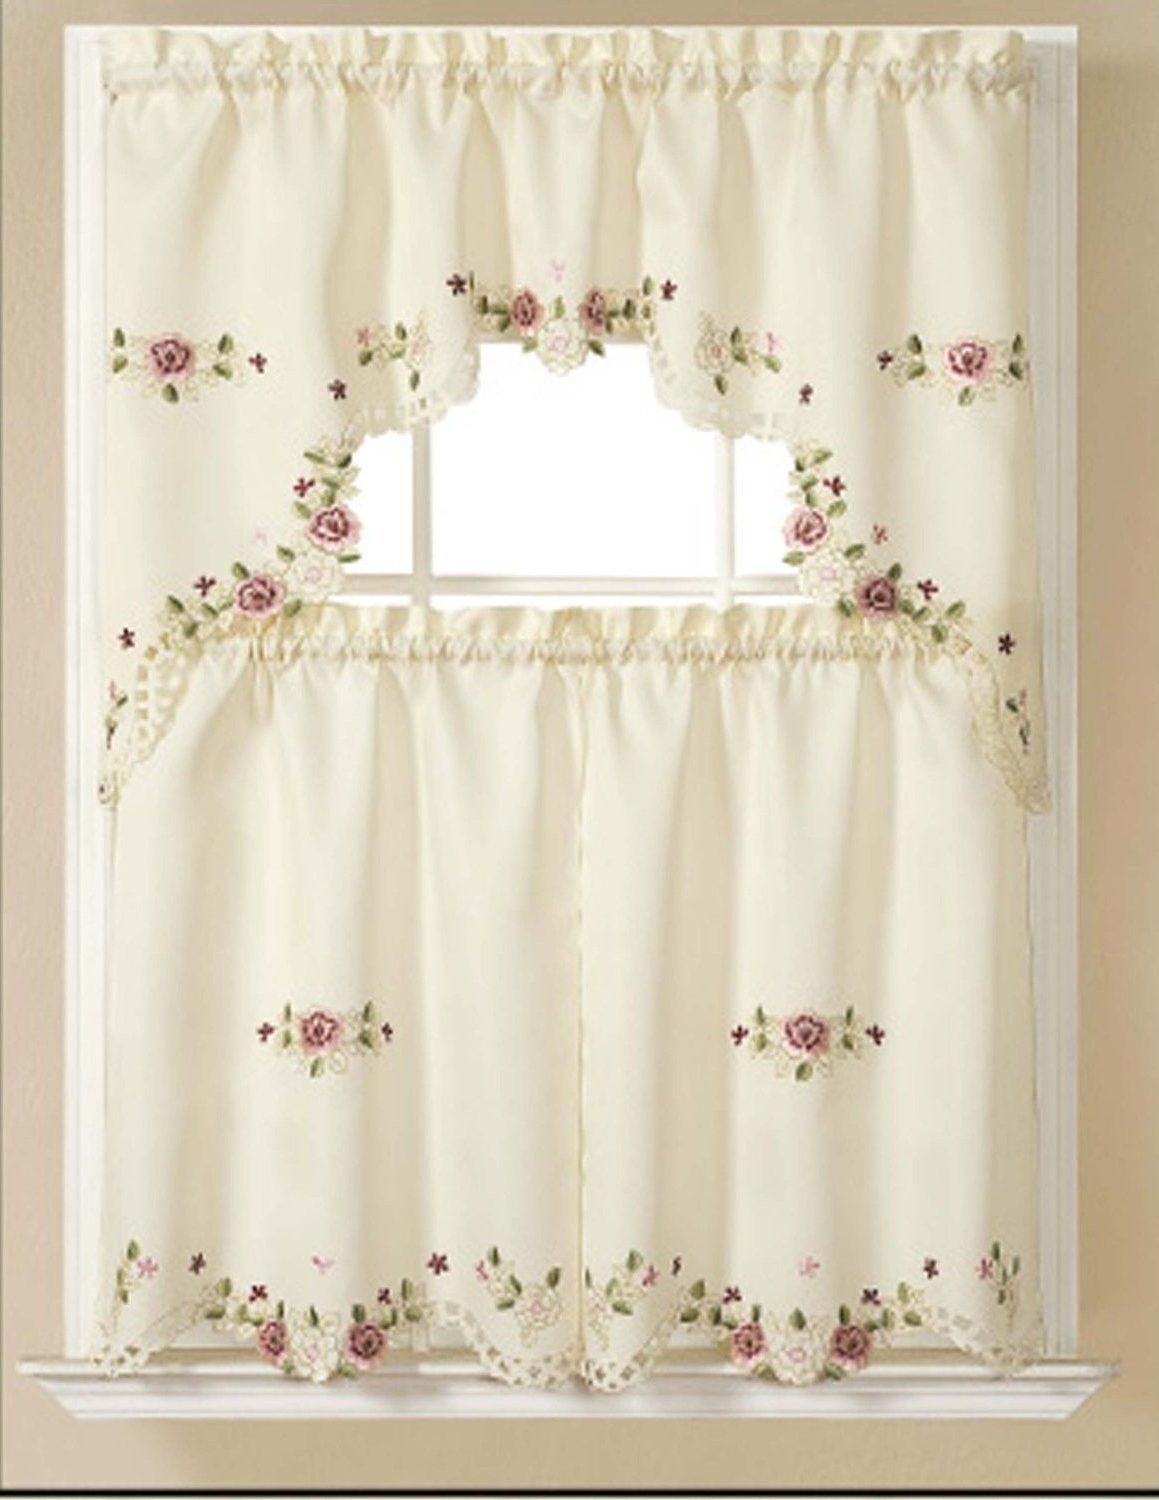 Preferred Spring Daisy Tiered Curtain 3 Piece Sets Within Alisha Elegant Embroidered Kitchen Curtain Swag & Tiers Set (View 13 of 20)